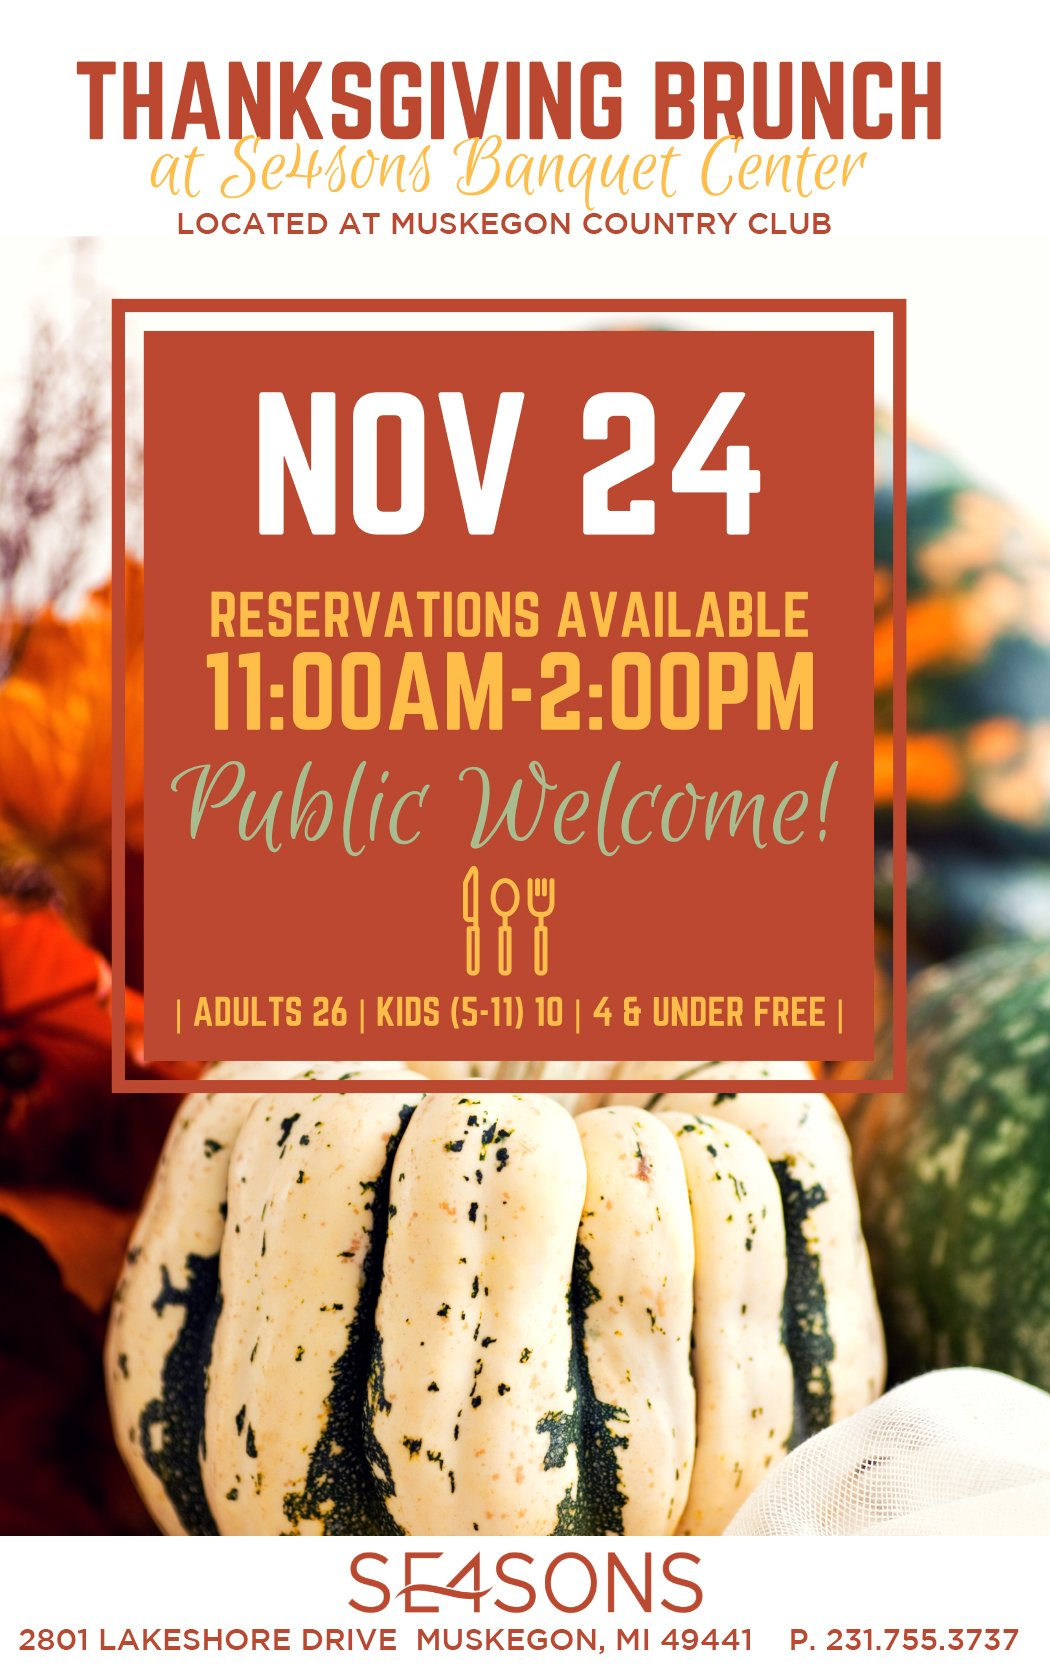 Nov 24 – Thanksgiving Brunch at SE4SONS